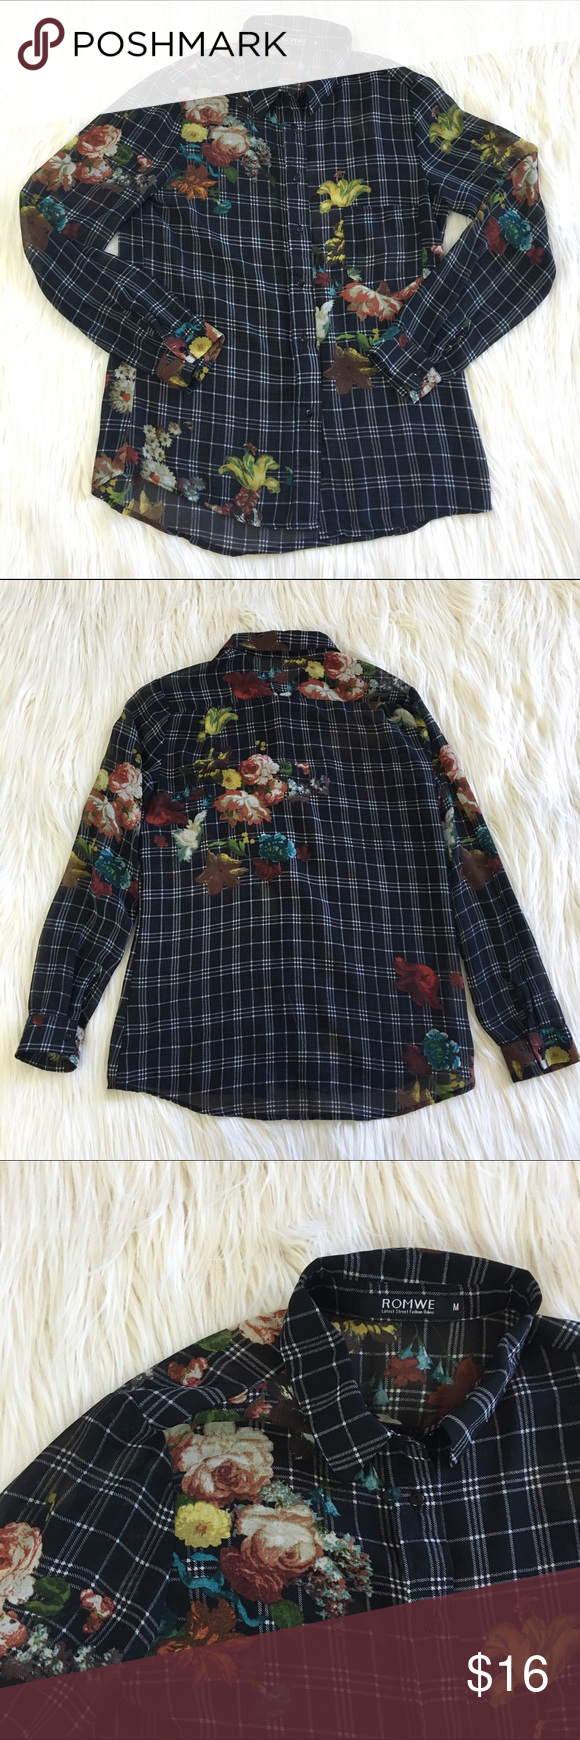 "Floral and Plaid Shirt Such a unique design! Flowed on top of a plaid button down shirt. Slightly sheer. Great as a cardigan on top of a black dress or top. Measures 18"" underarm to underarm and 25"" in length. Good used condition. This is a reposh that I didn't wear often enough. I figured someone else could get more use out of it! It's so darn cute I just have too many clothes!  ROMWE Tops Button Down Shirts"